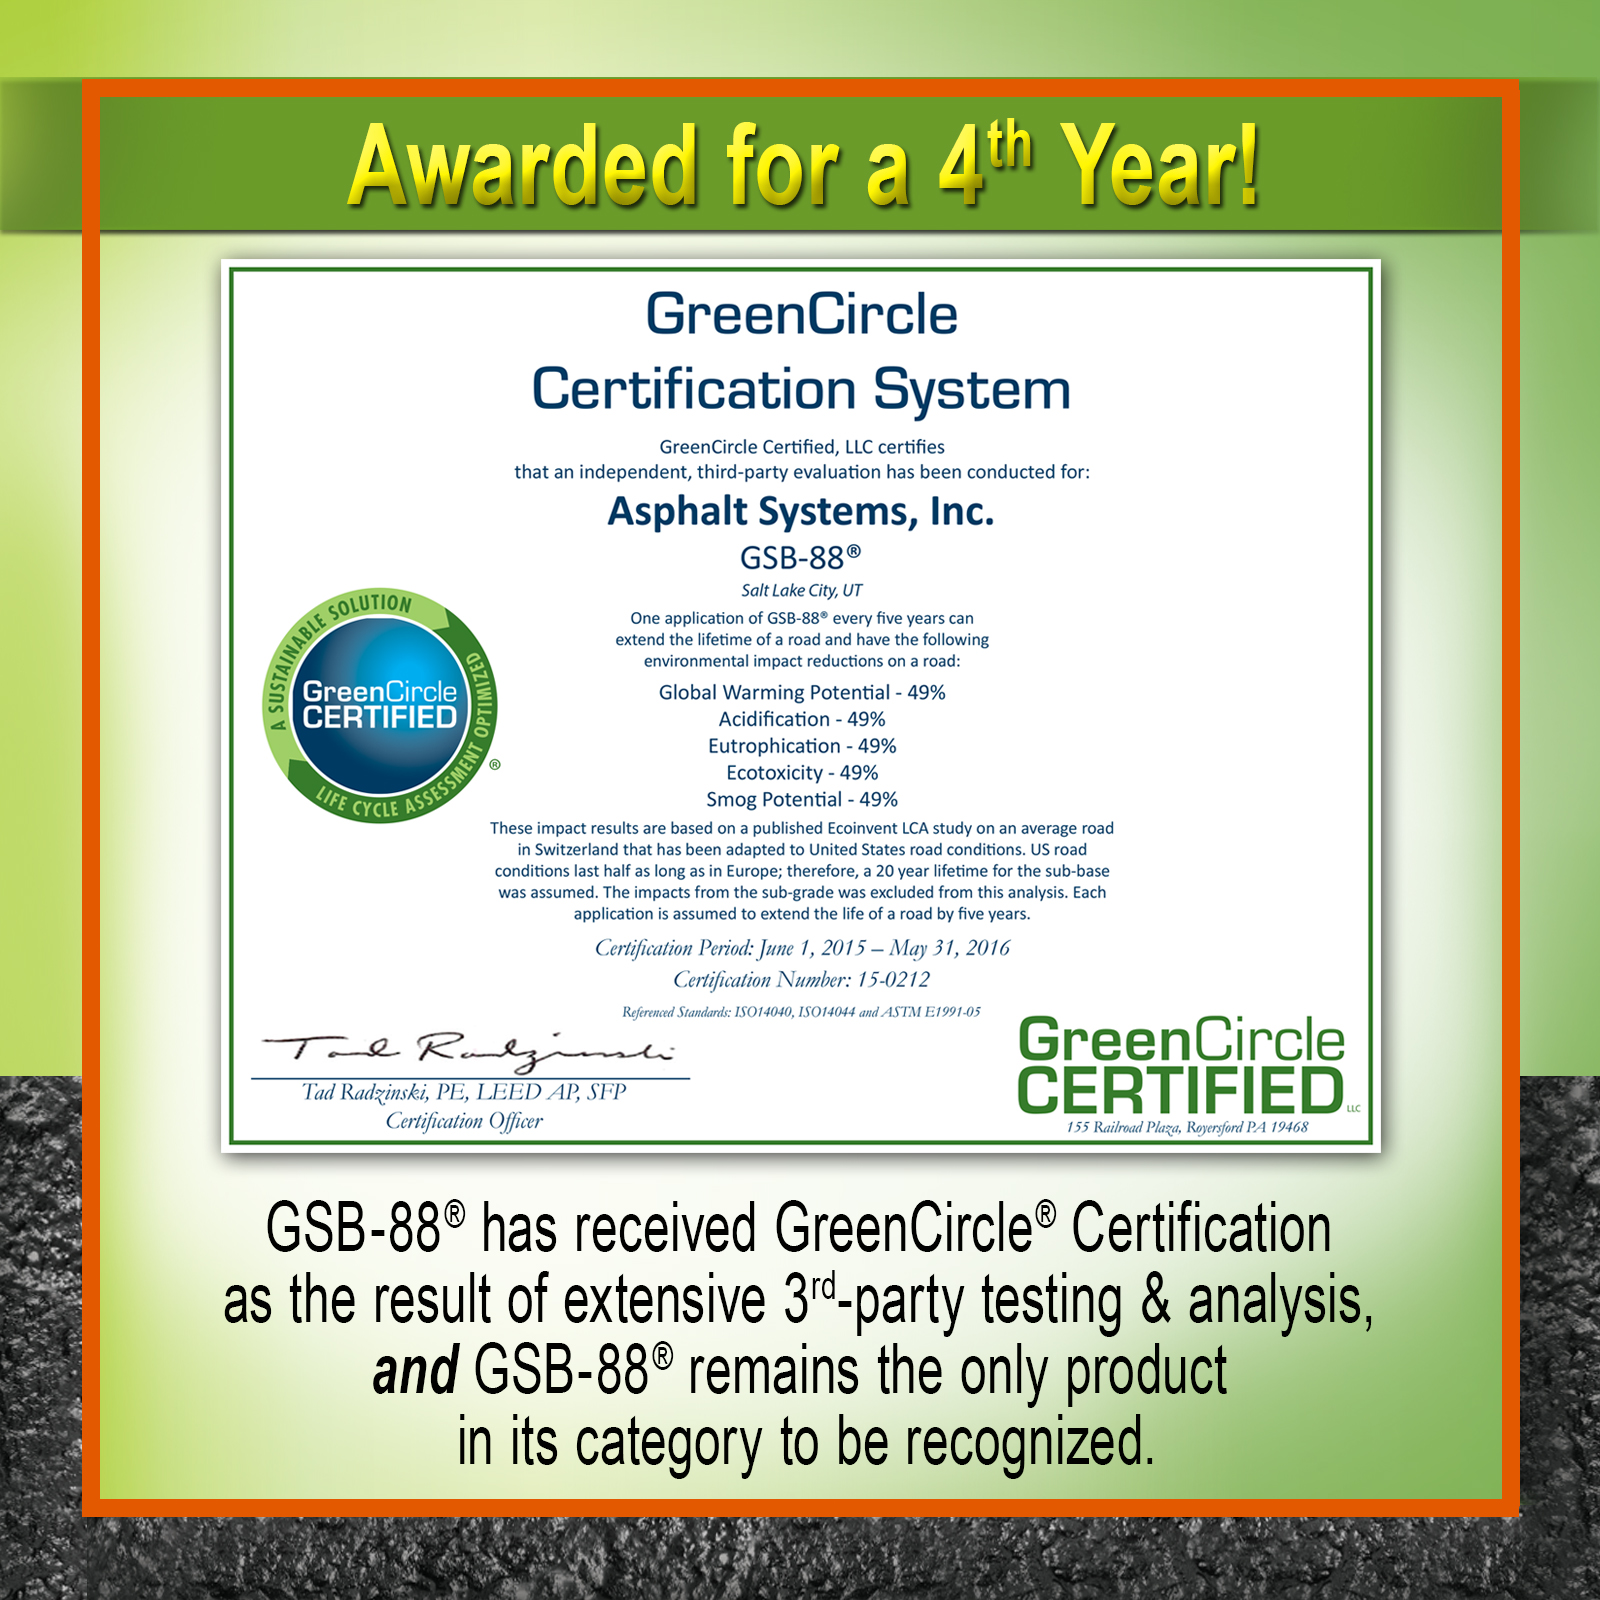 Gsb 88 received 4th greencircle certification gee asphalt gsb 88 received 4th greencircle certification gee asphalt systems inc 1betcityfo Gallery